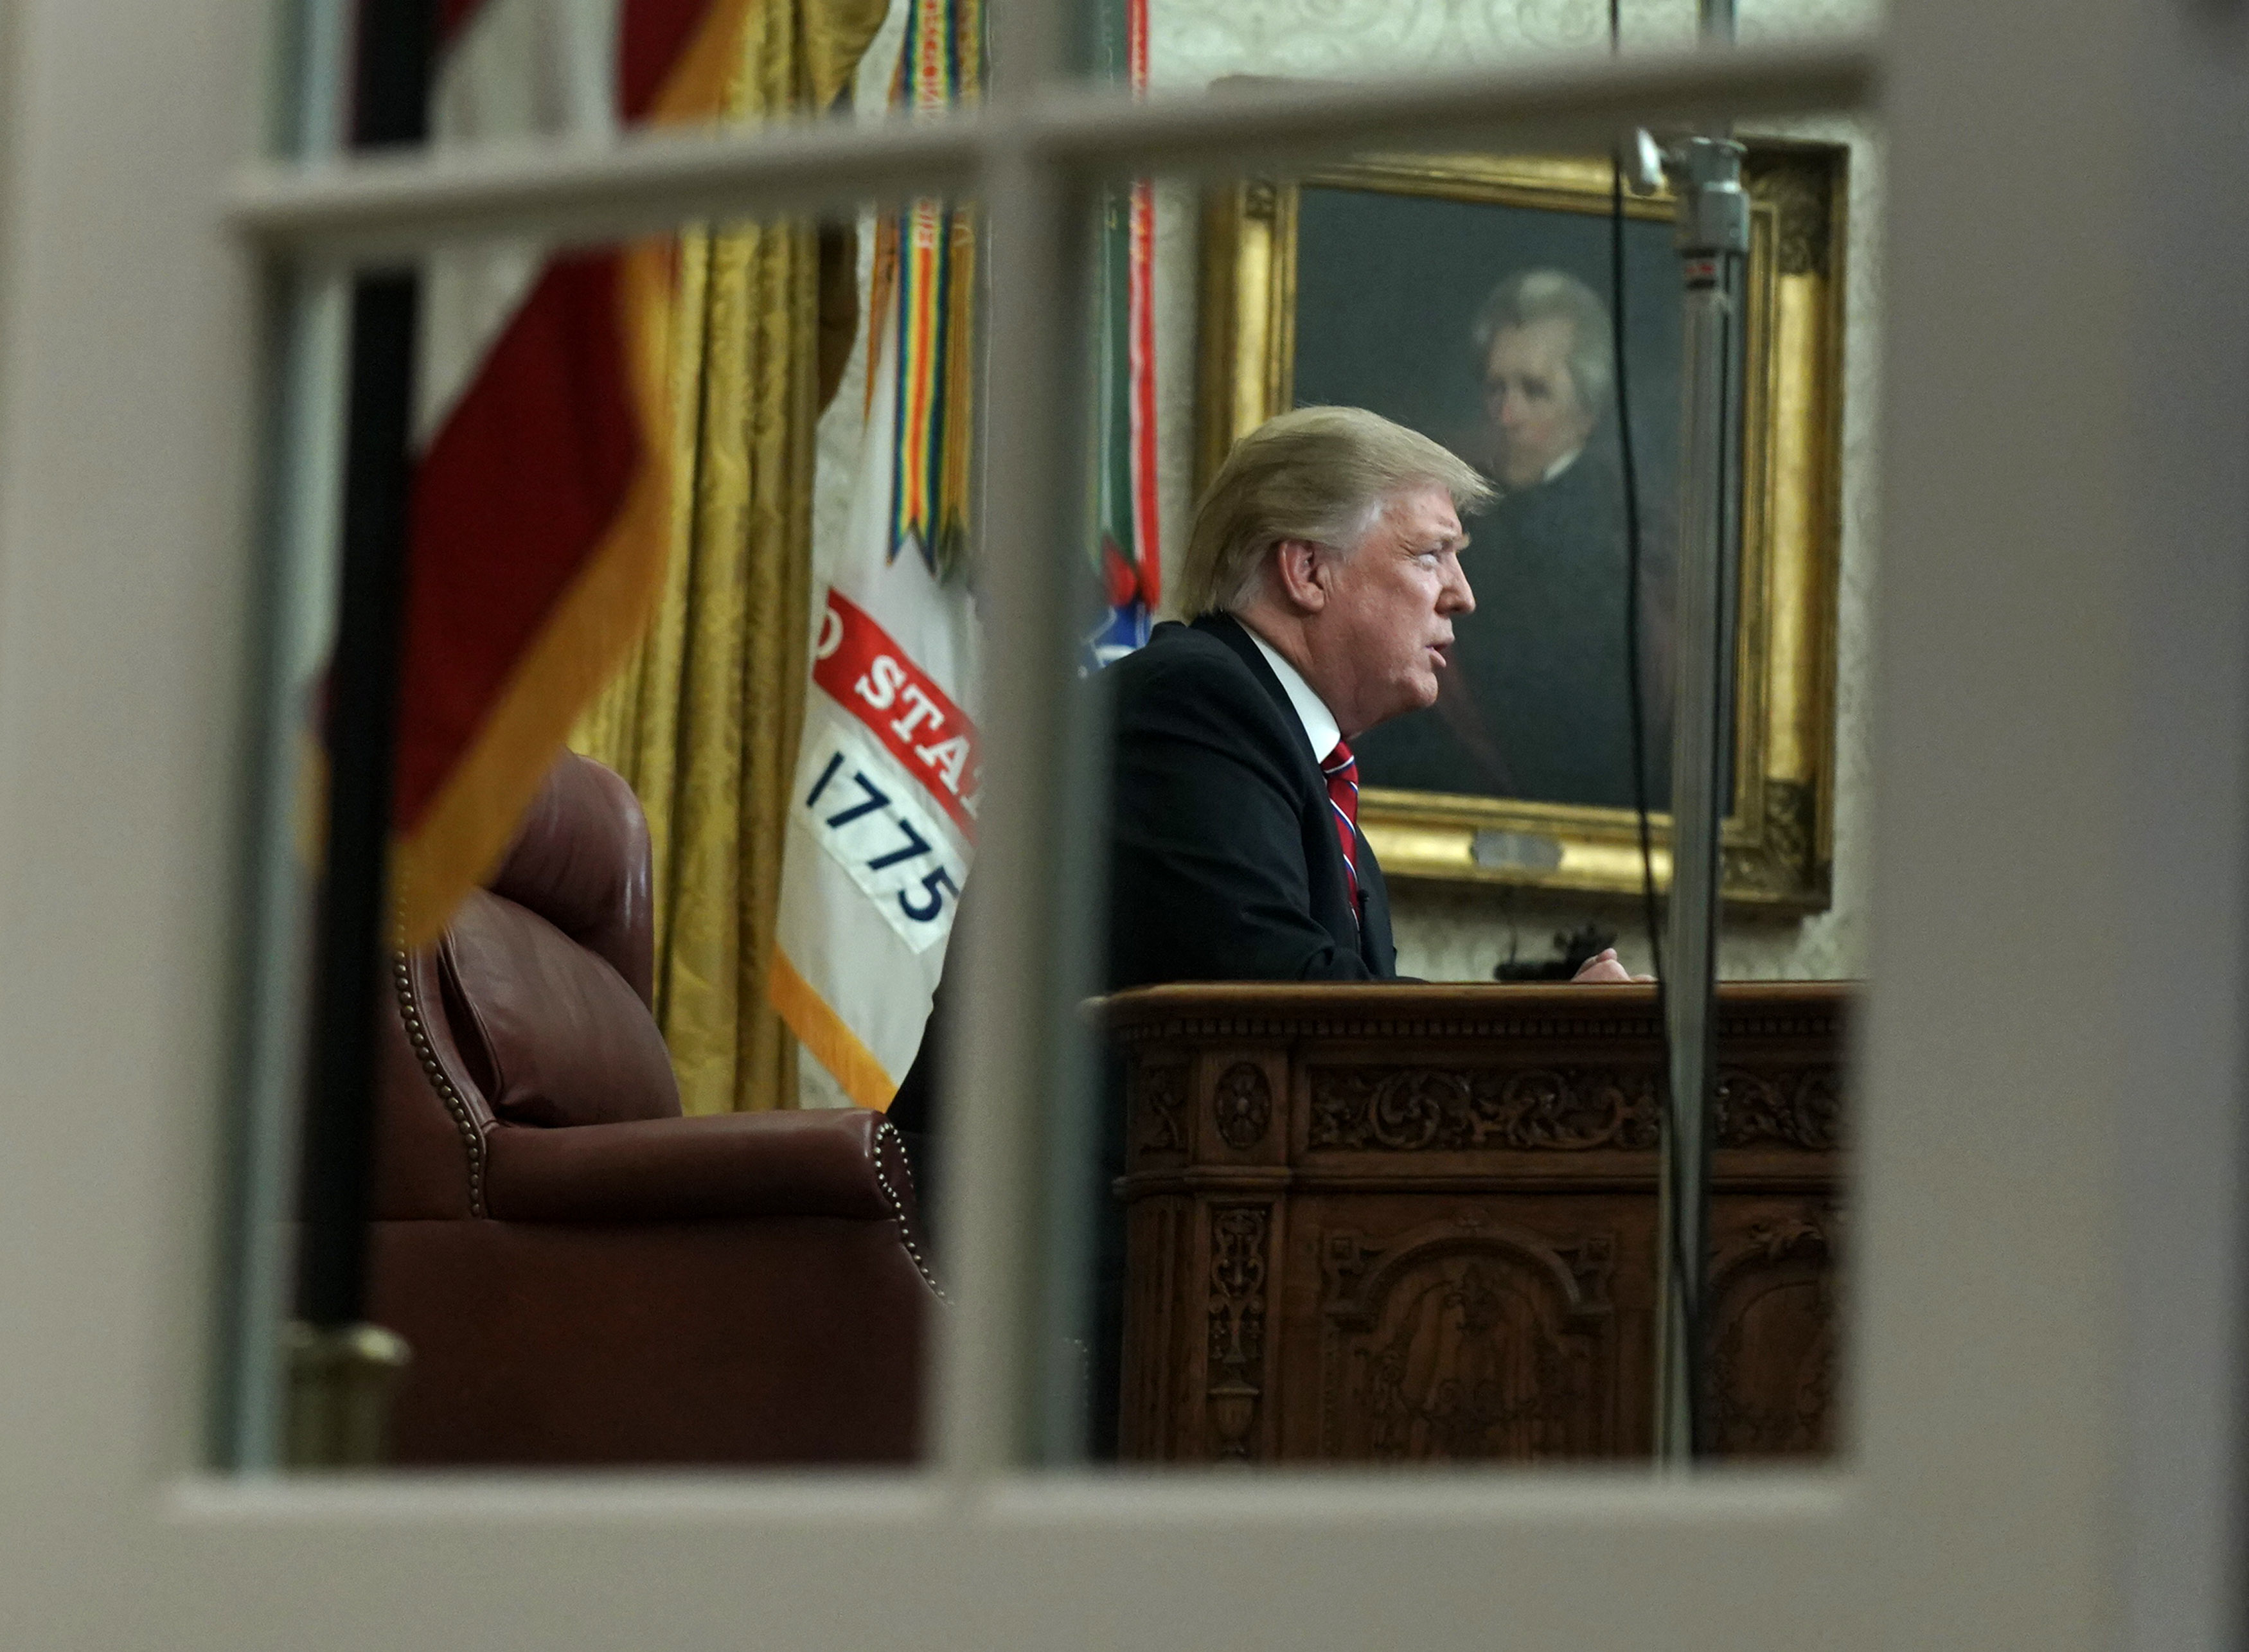 U.S. President Donald Trump speaks to the nation in his first-prime address from the Oval Office of the White House on January 8, 2019 in Washington, DC. (Photo by Kevin Dietsch-Pool/Getty Images)